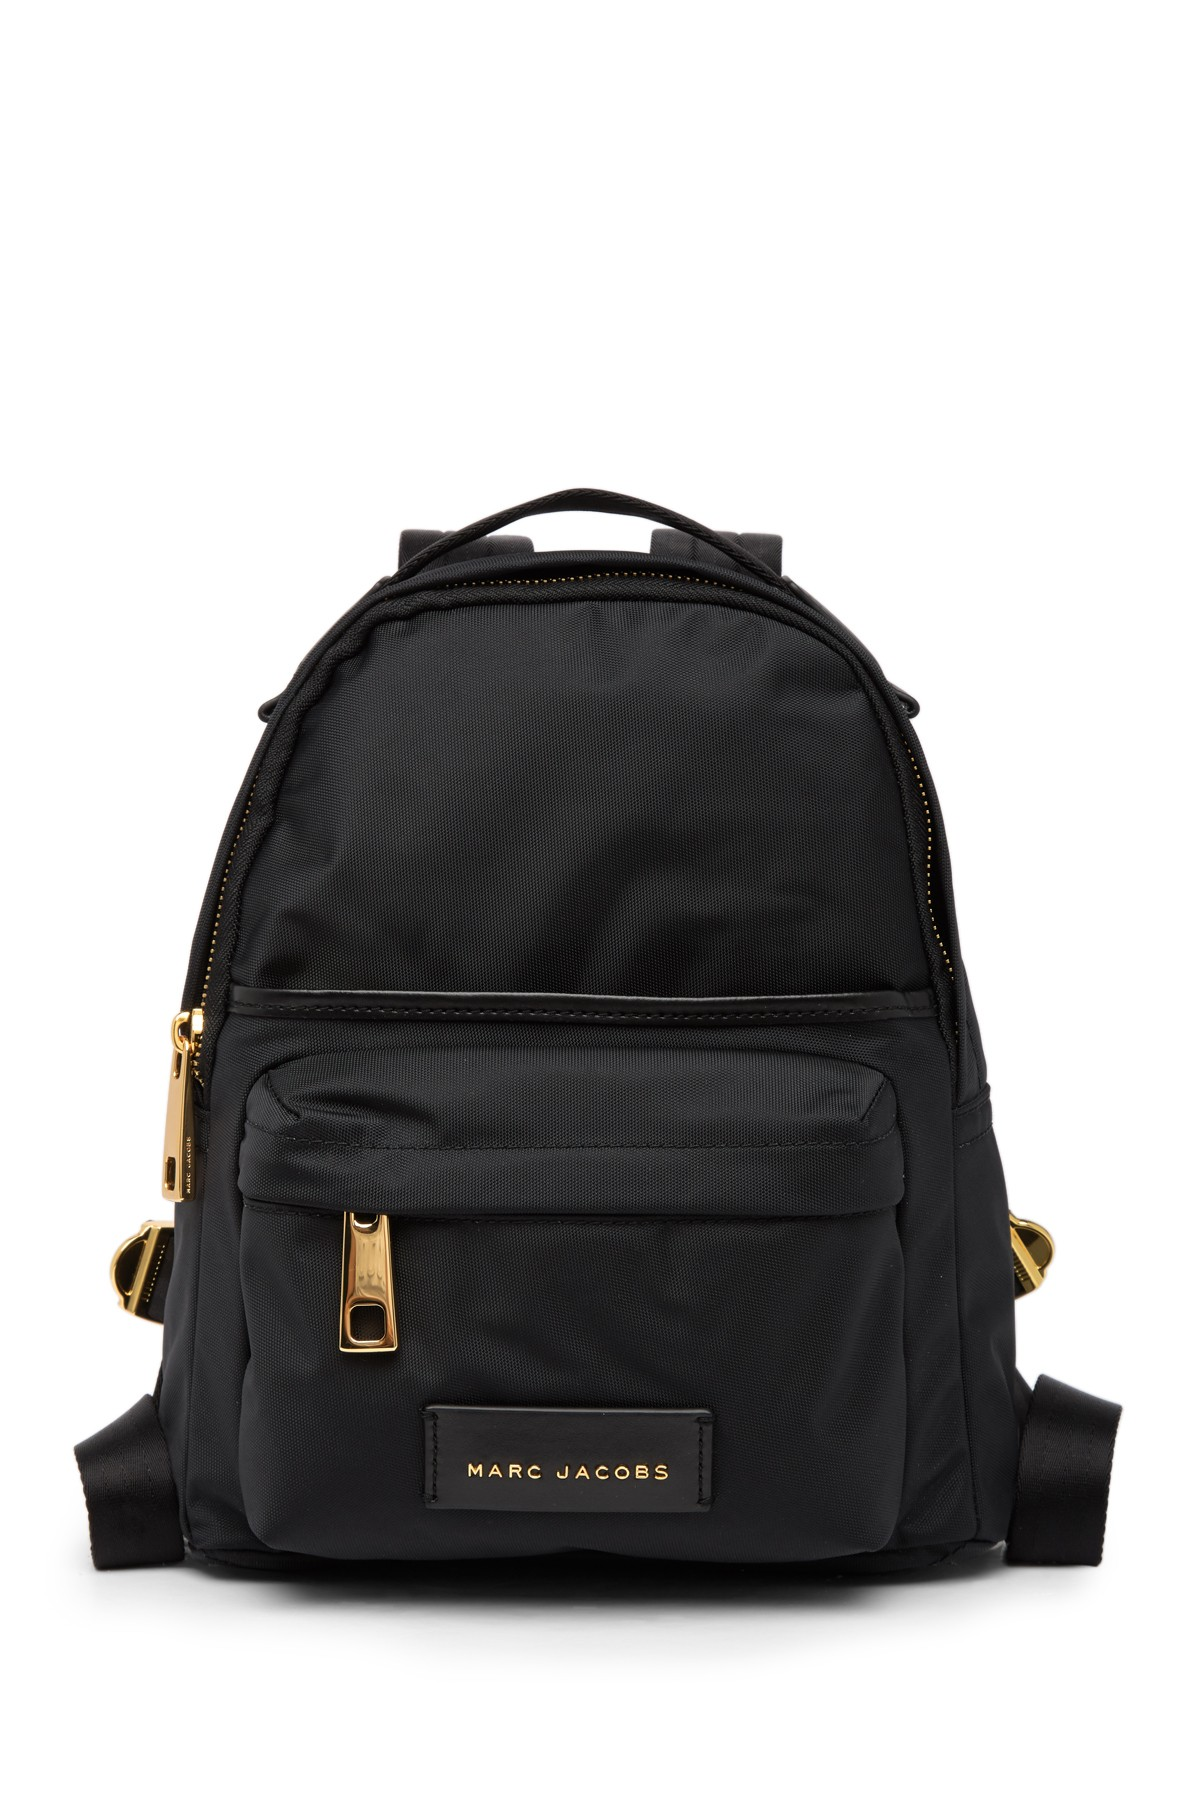 583aea9ad Marc Jacobs - Nylon Varsity Small Backpack. Free Shipping on orders over  $100.